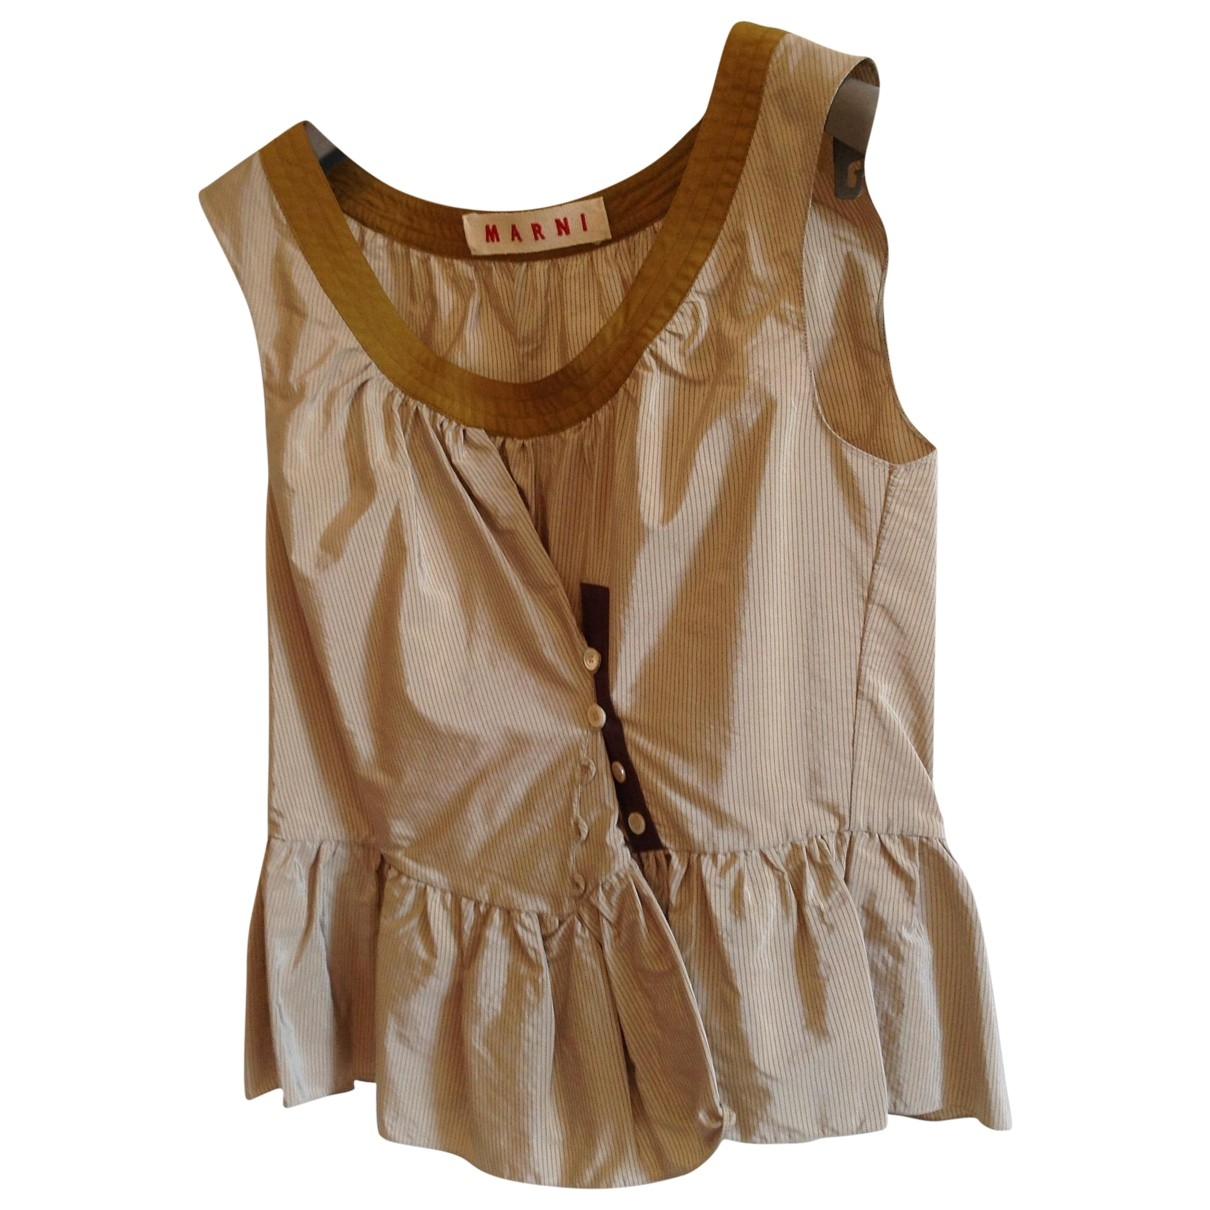 Marni \N Green  top for Women 38 IT